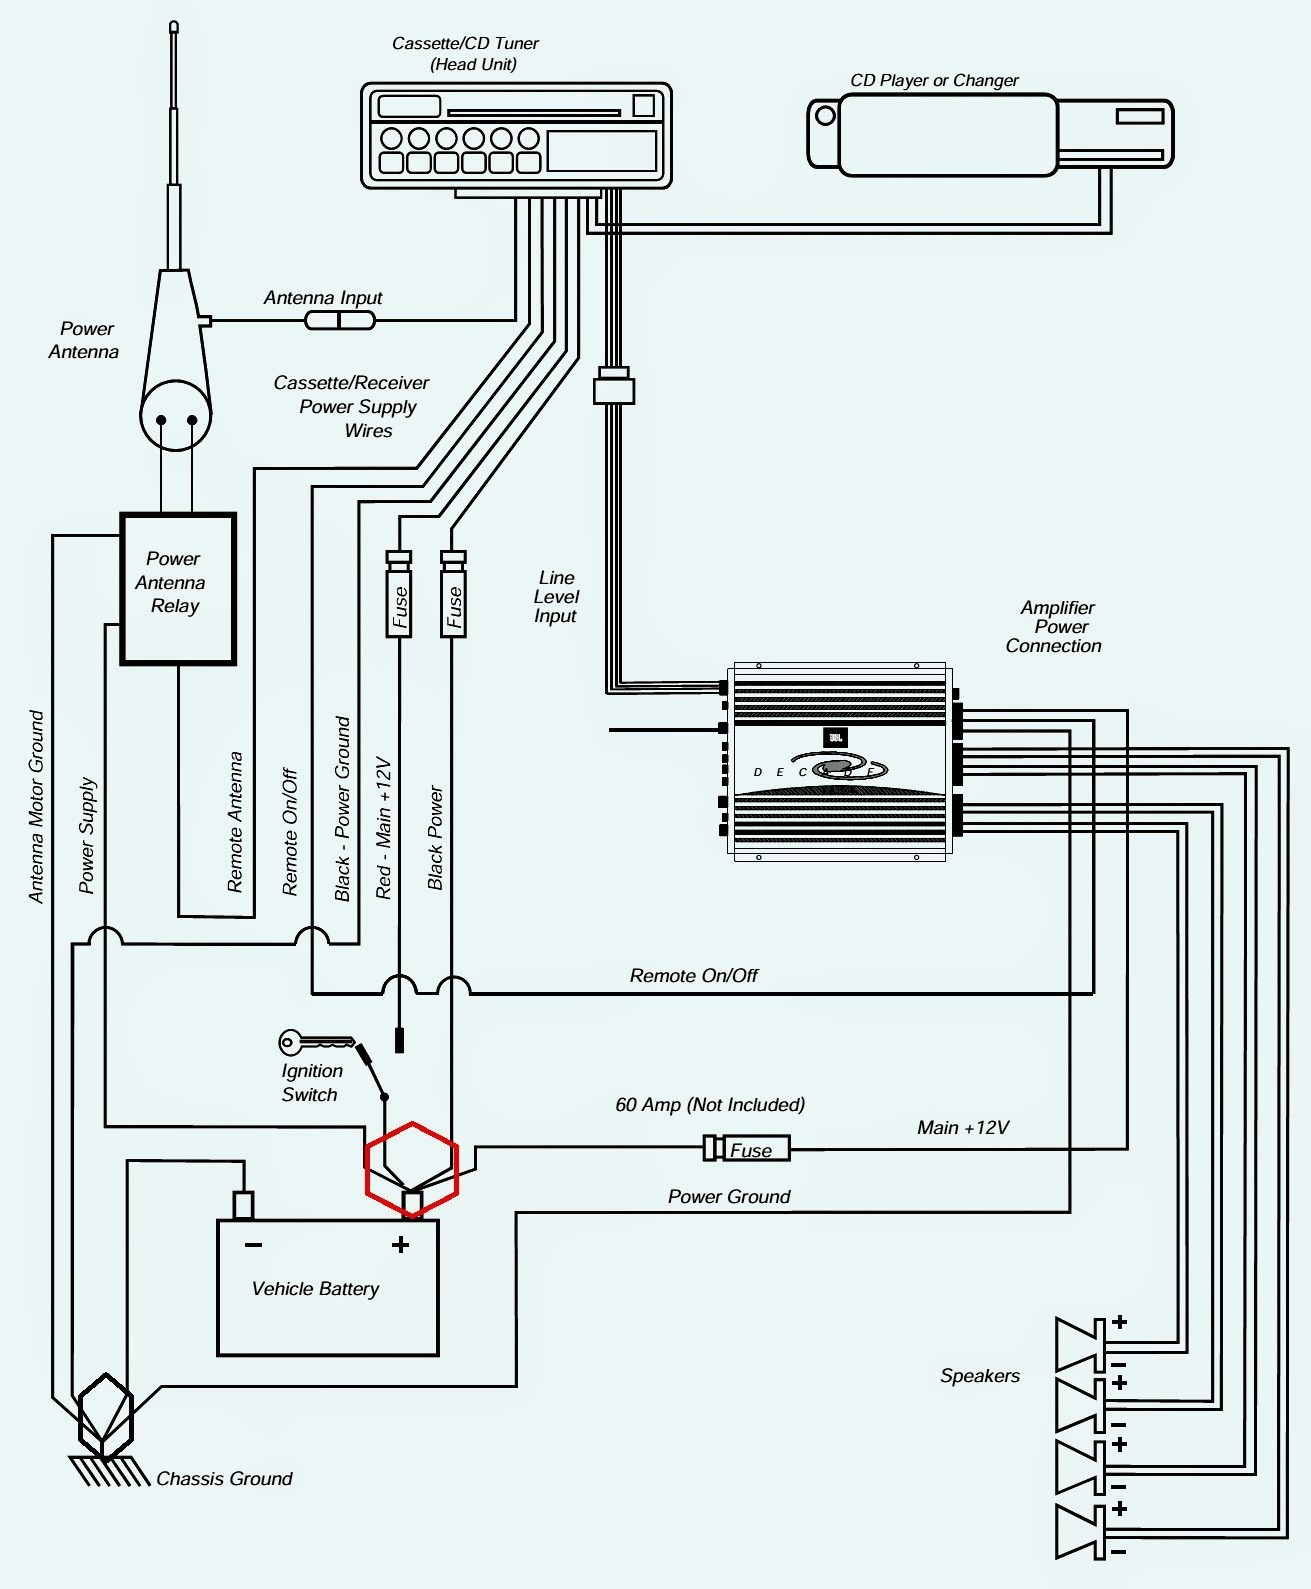 Car Stereo Installation Diagram My Wiring Install Amp Amplifier Simplified Shapes Of